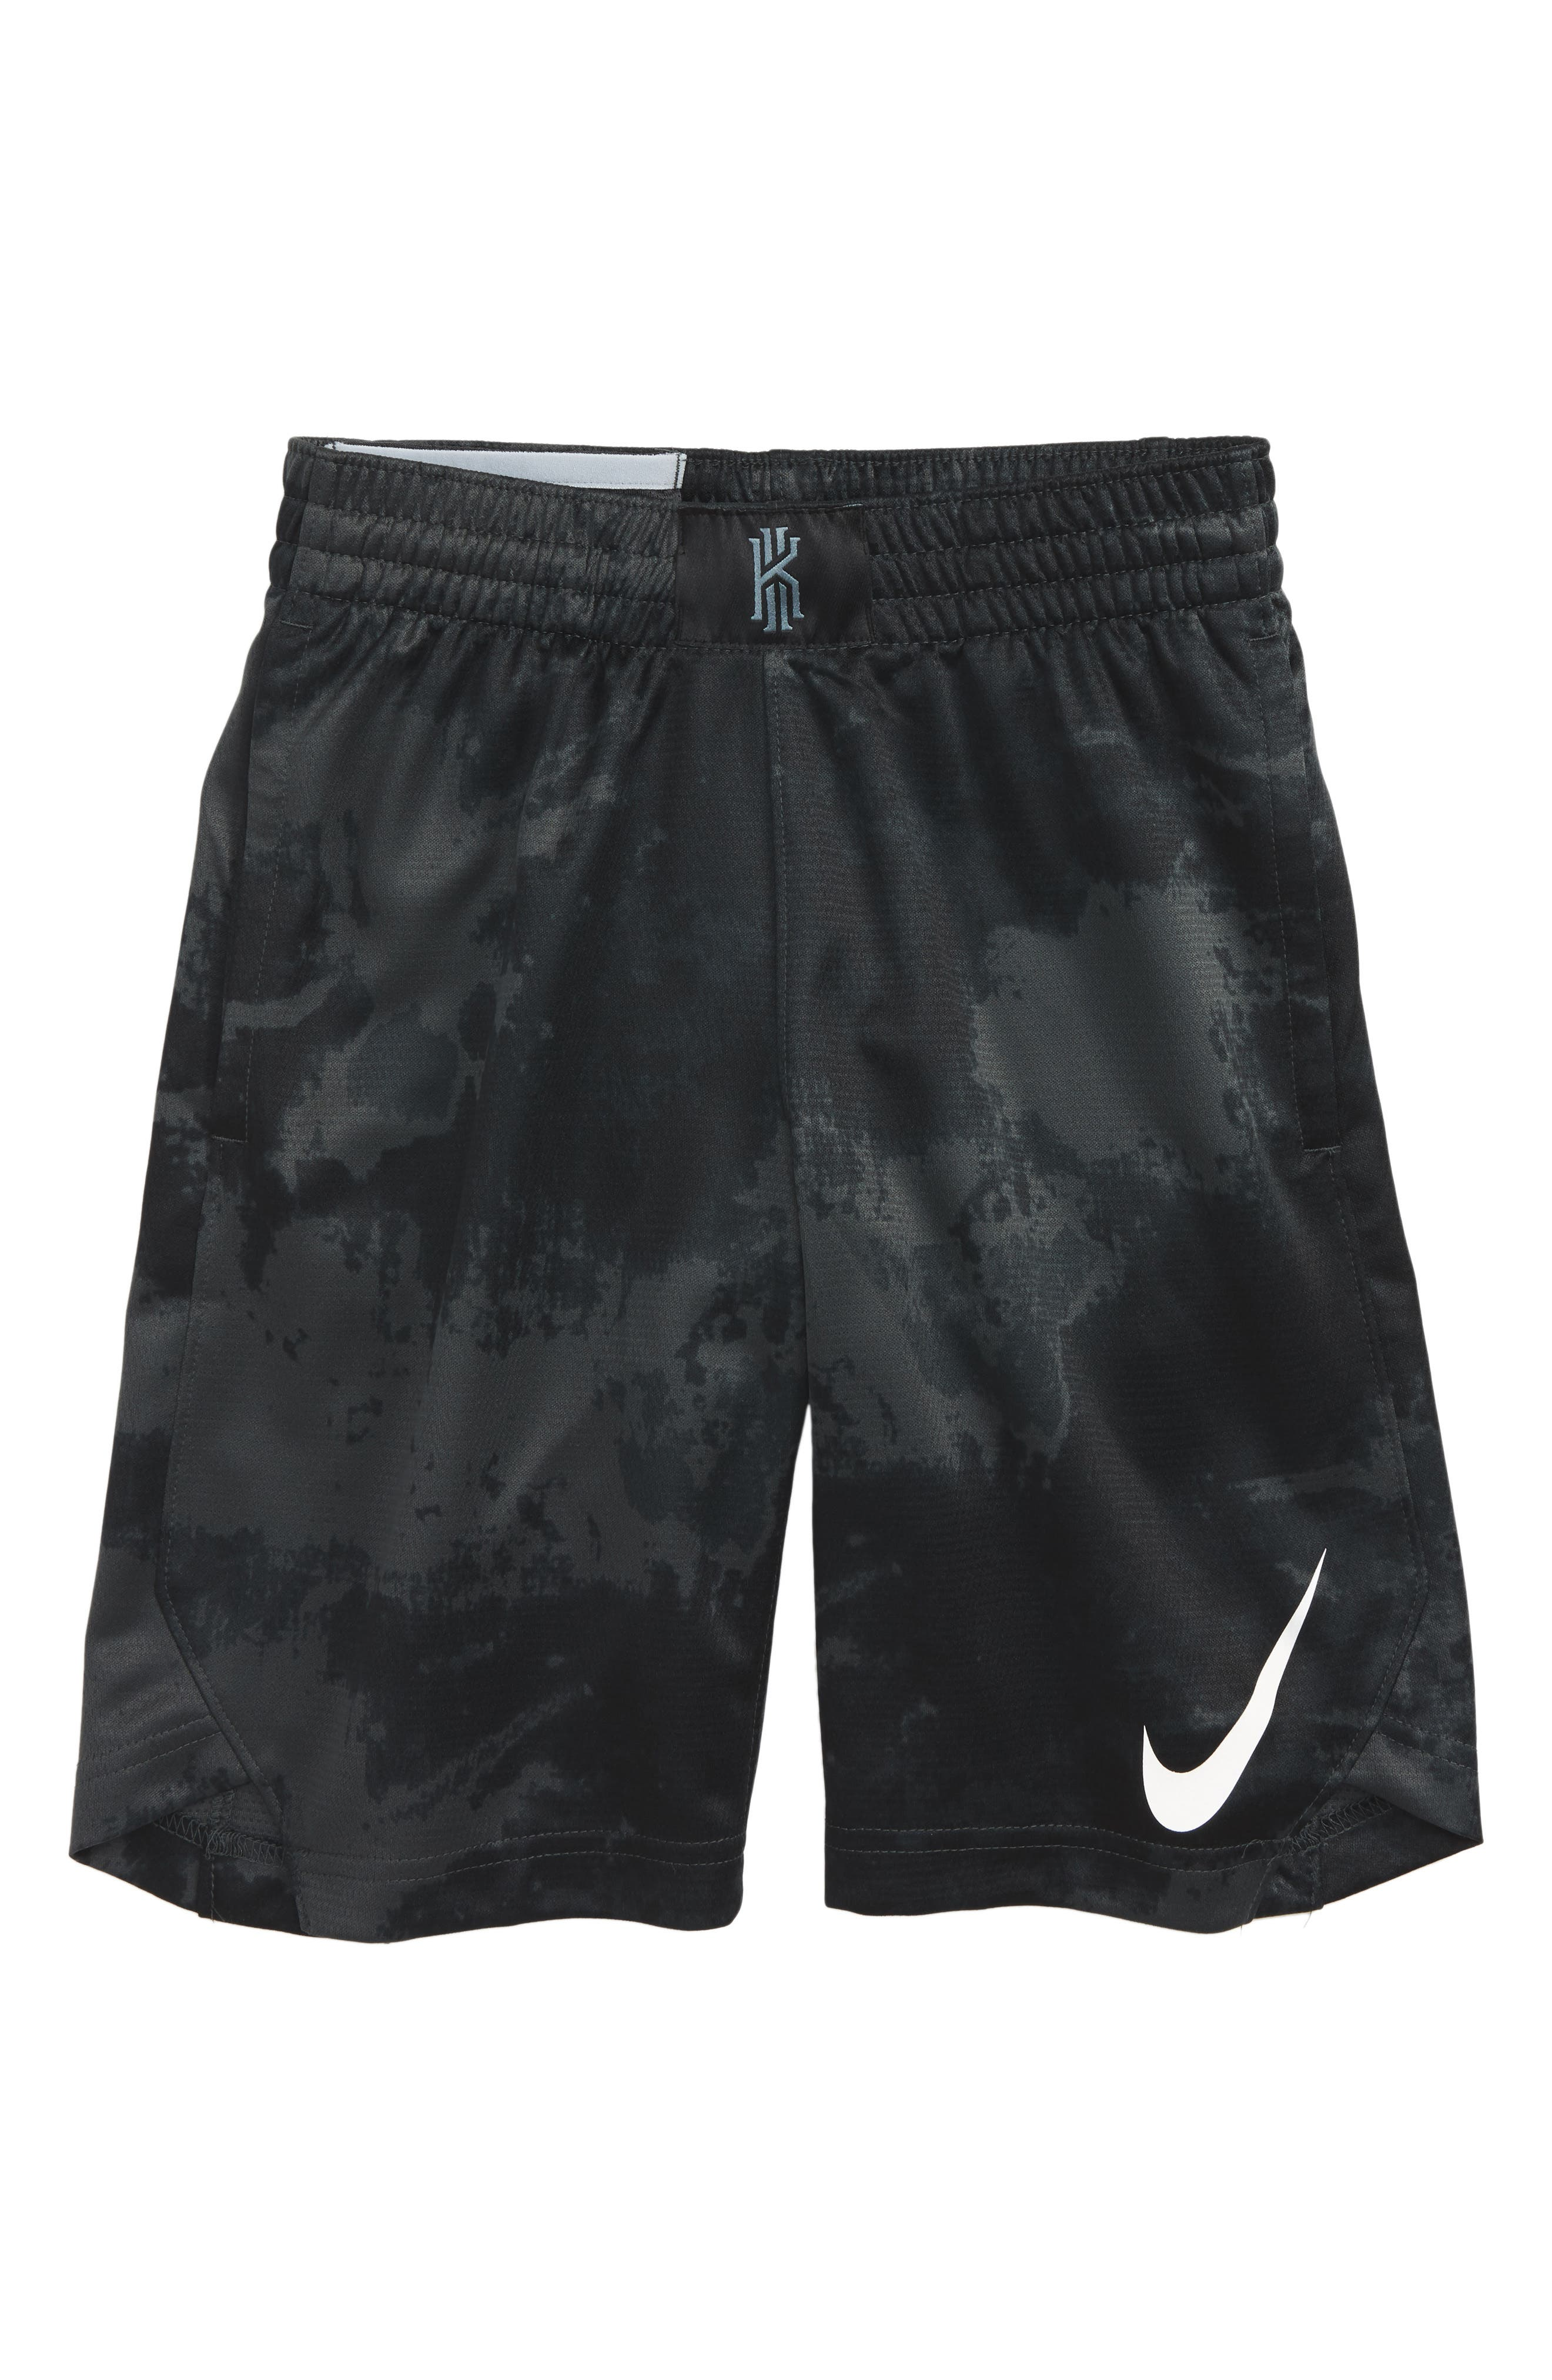 Alternate Image 1 Selected - Nike Dry Kyrie Elite Basketball Shorts (Little Boys & Big Boys)